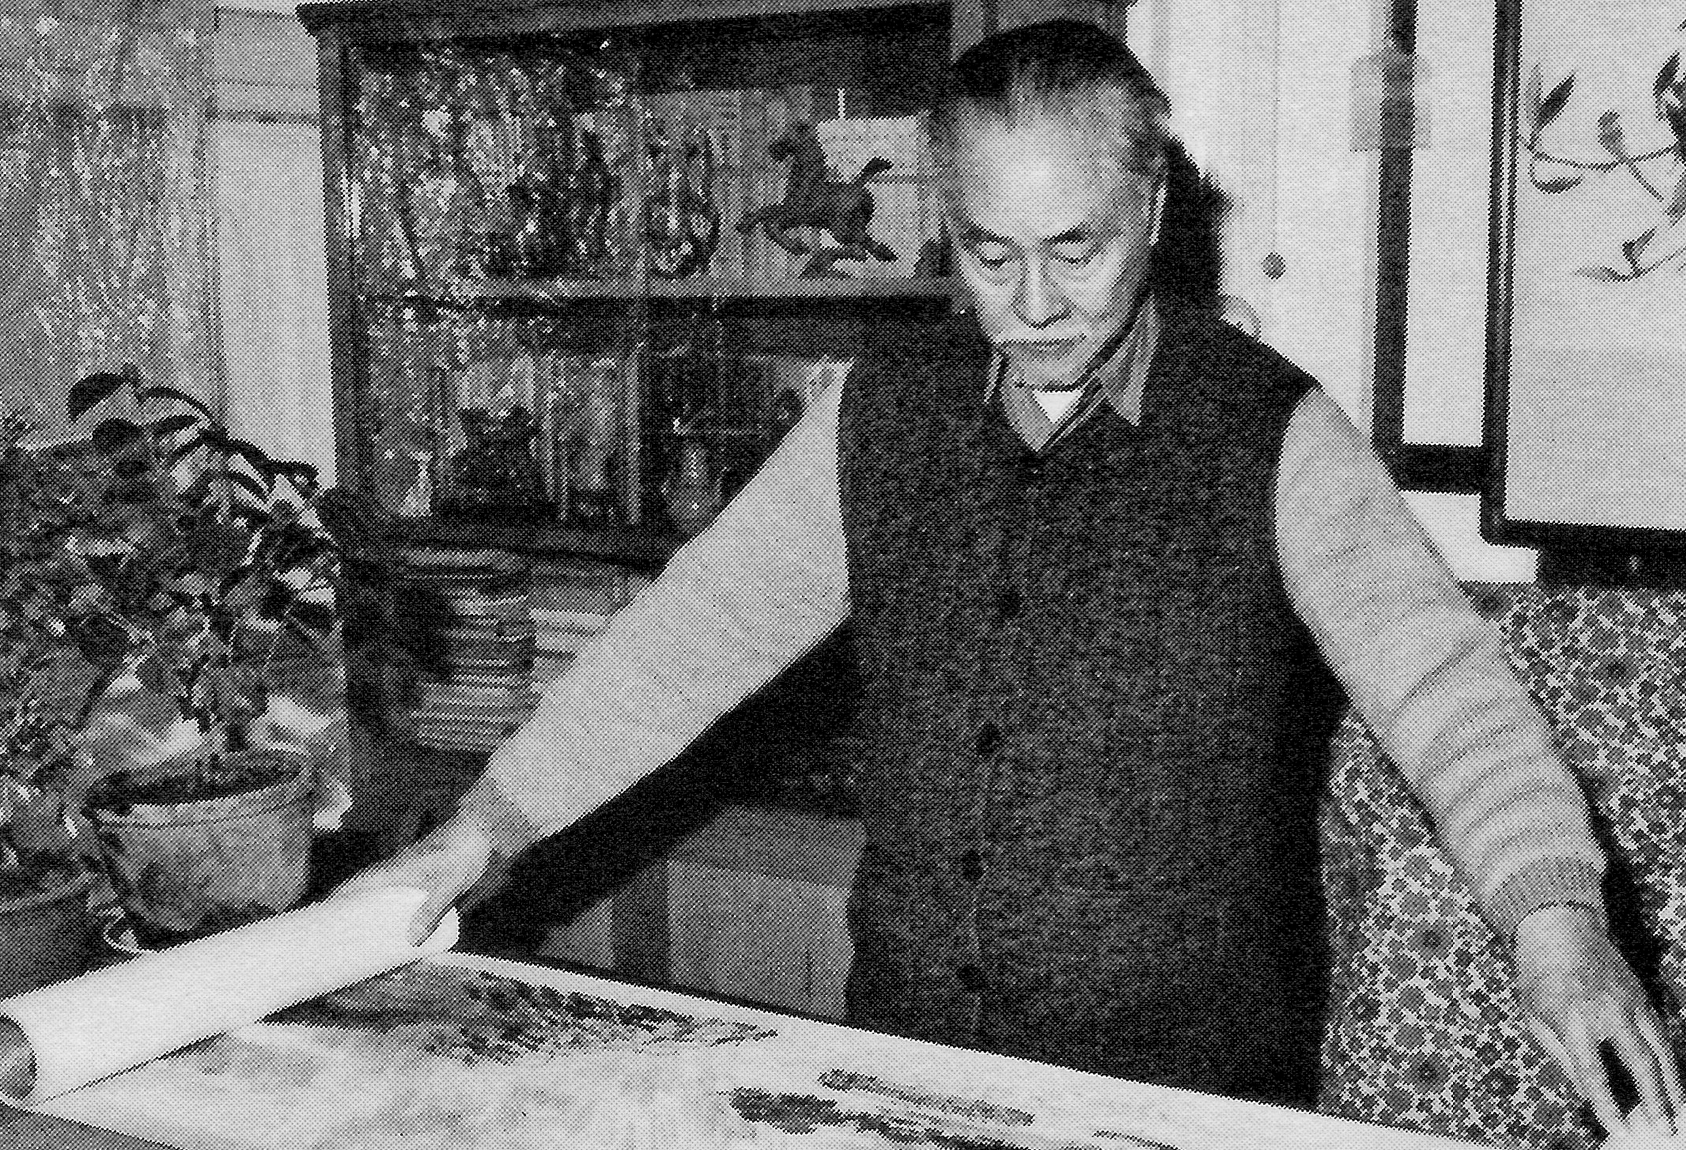 Ye Qianyu, well known painter and cartoonist, displays his work at his home in Beijing. During the December trip, many individual artists were eager to discuss their possible involvement in the Center's programs.